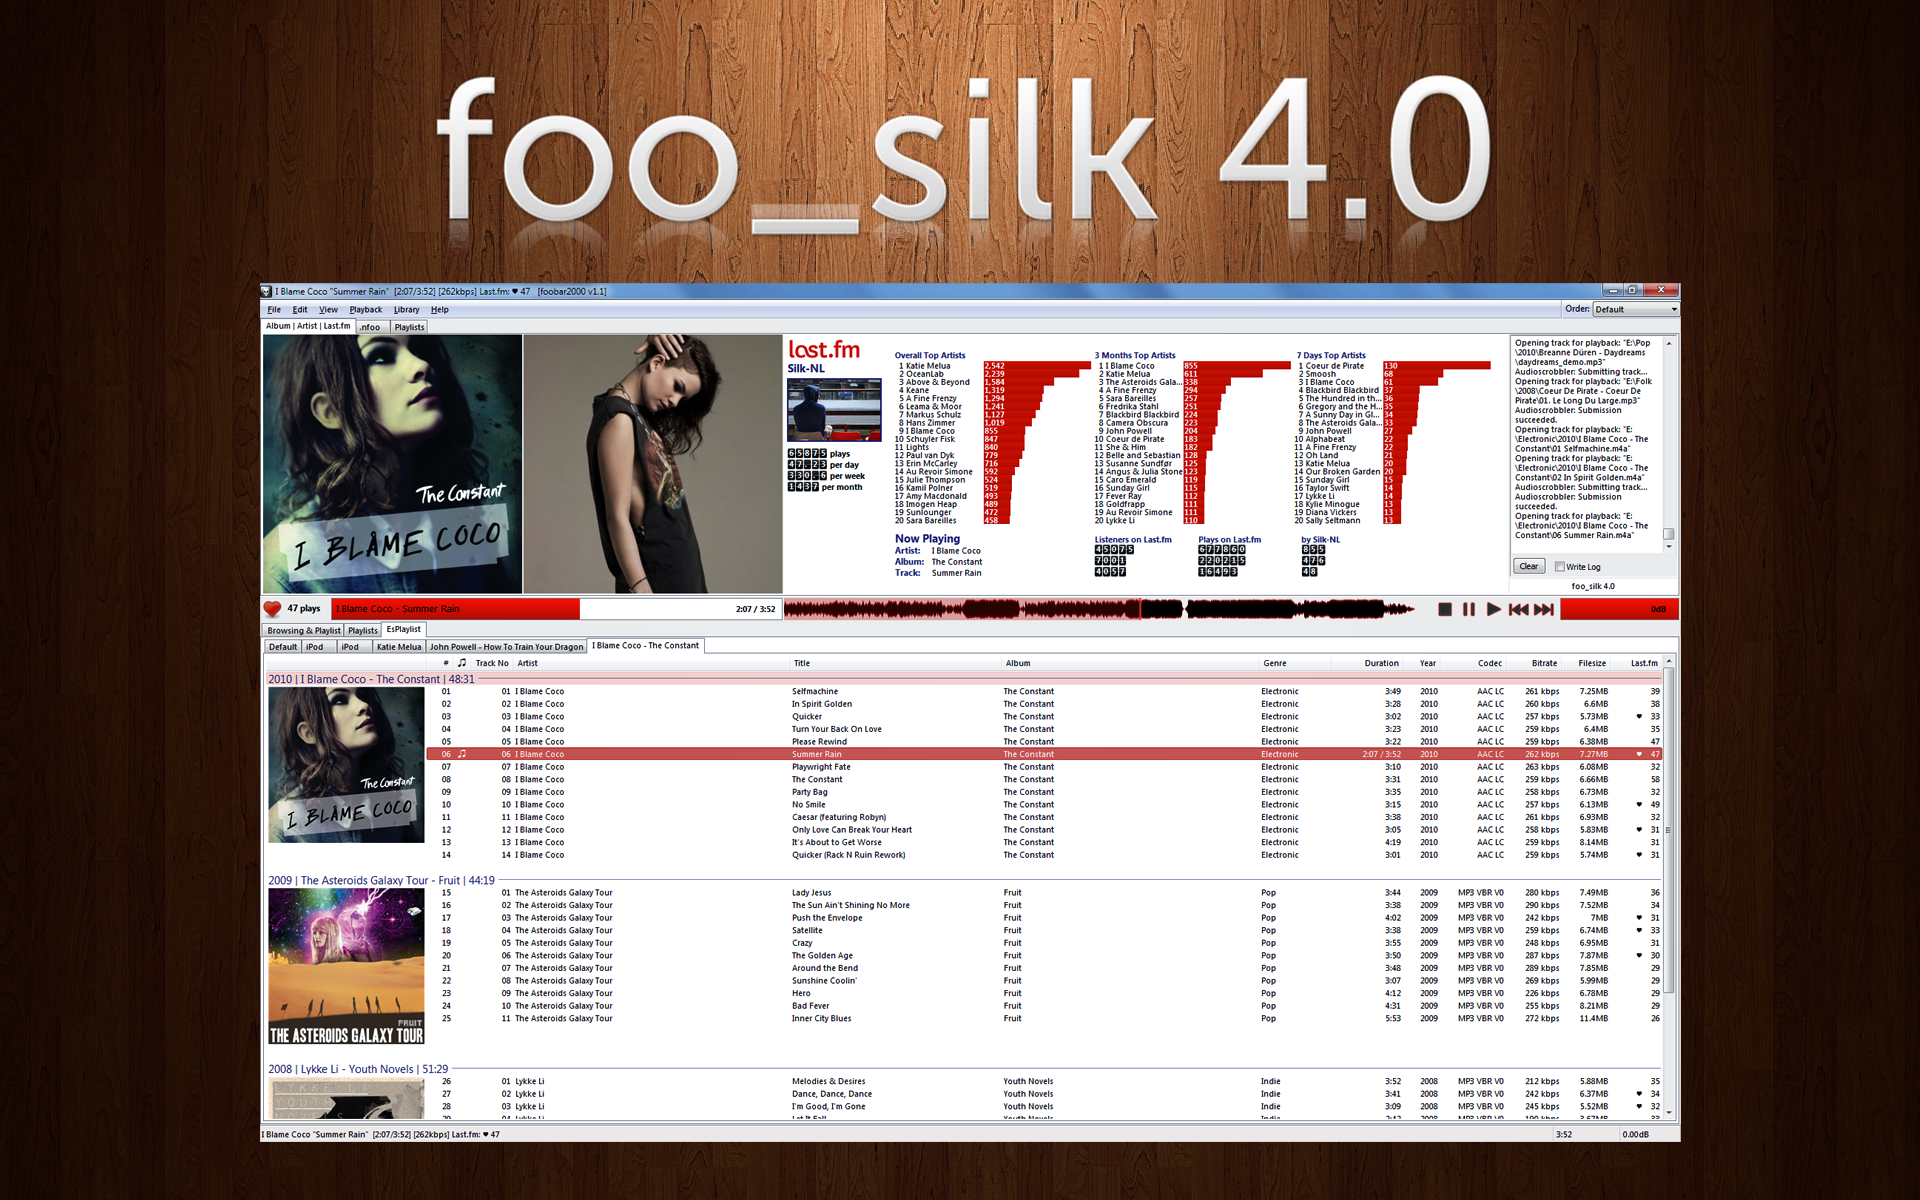 foo_silk 4.0 by MatthijsB